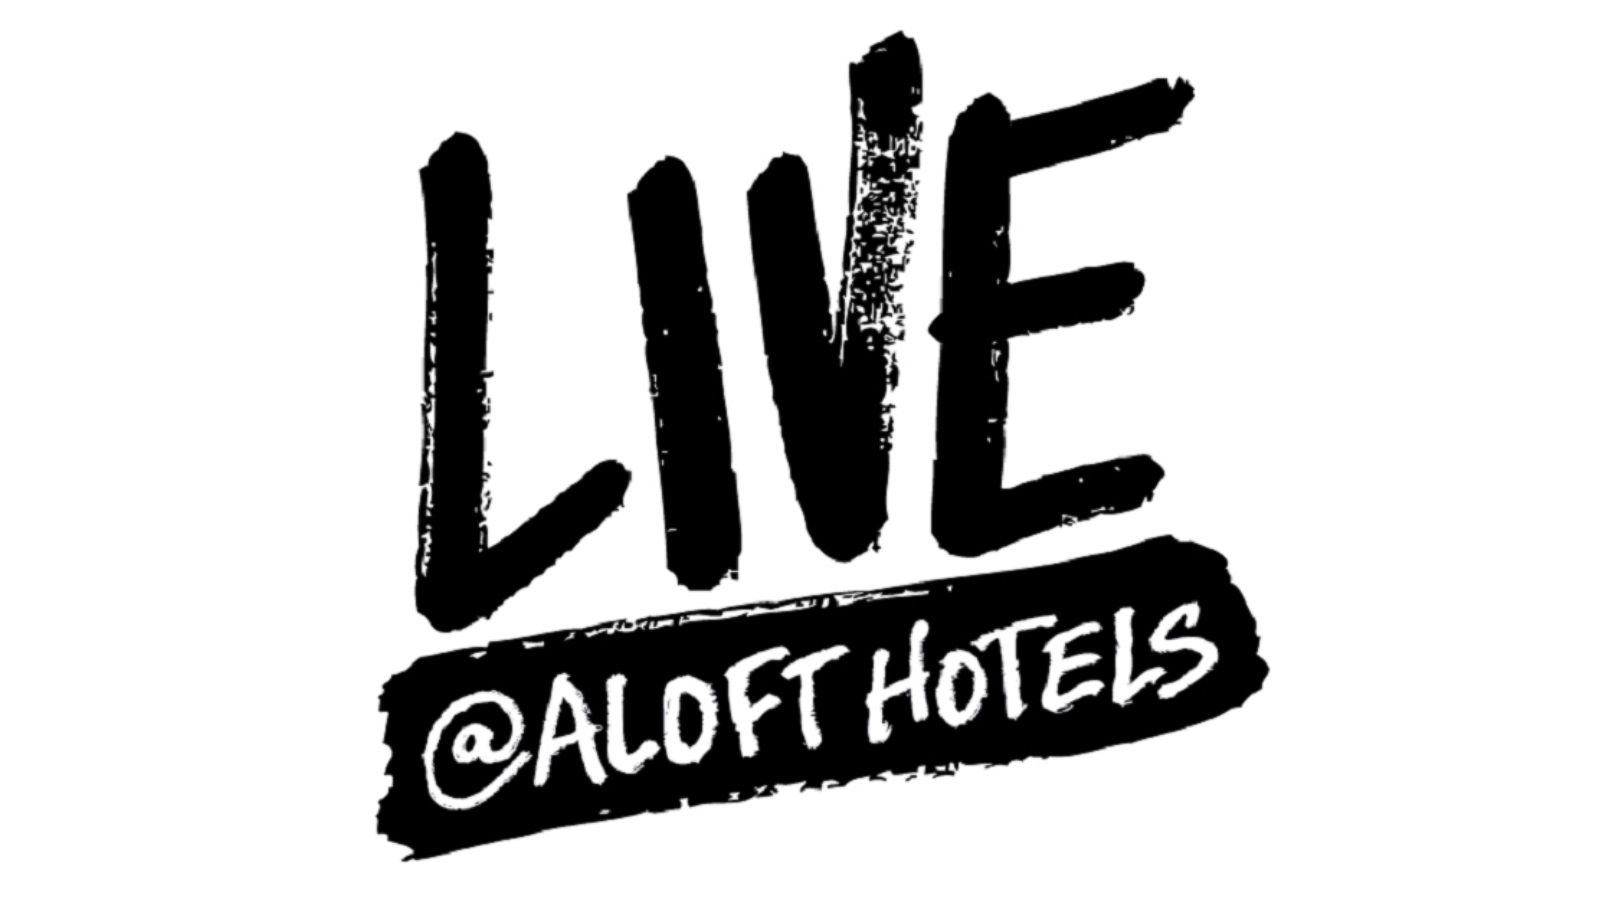 Lexington Bars - Live at Aloft